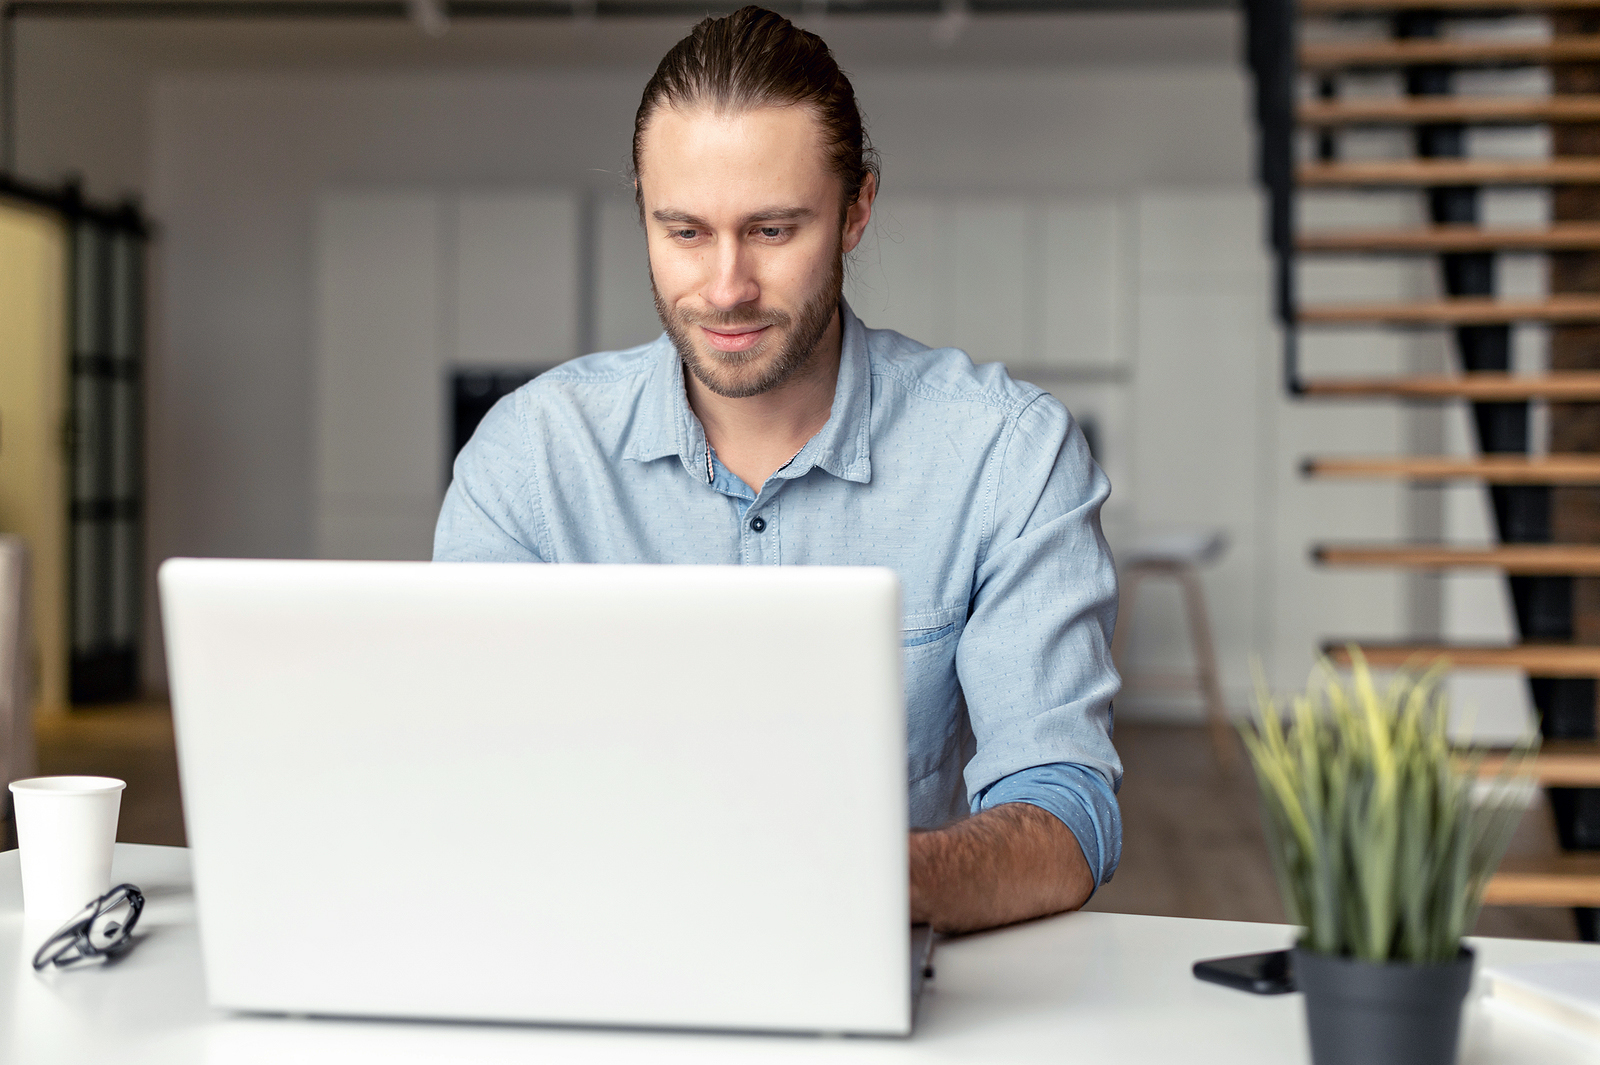 Job Candidate Shown Applying For Jobs Online